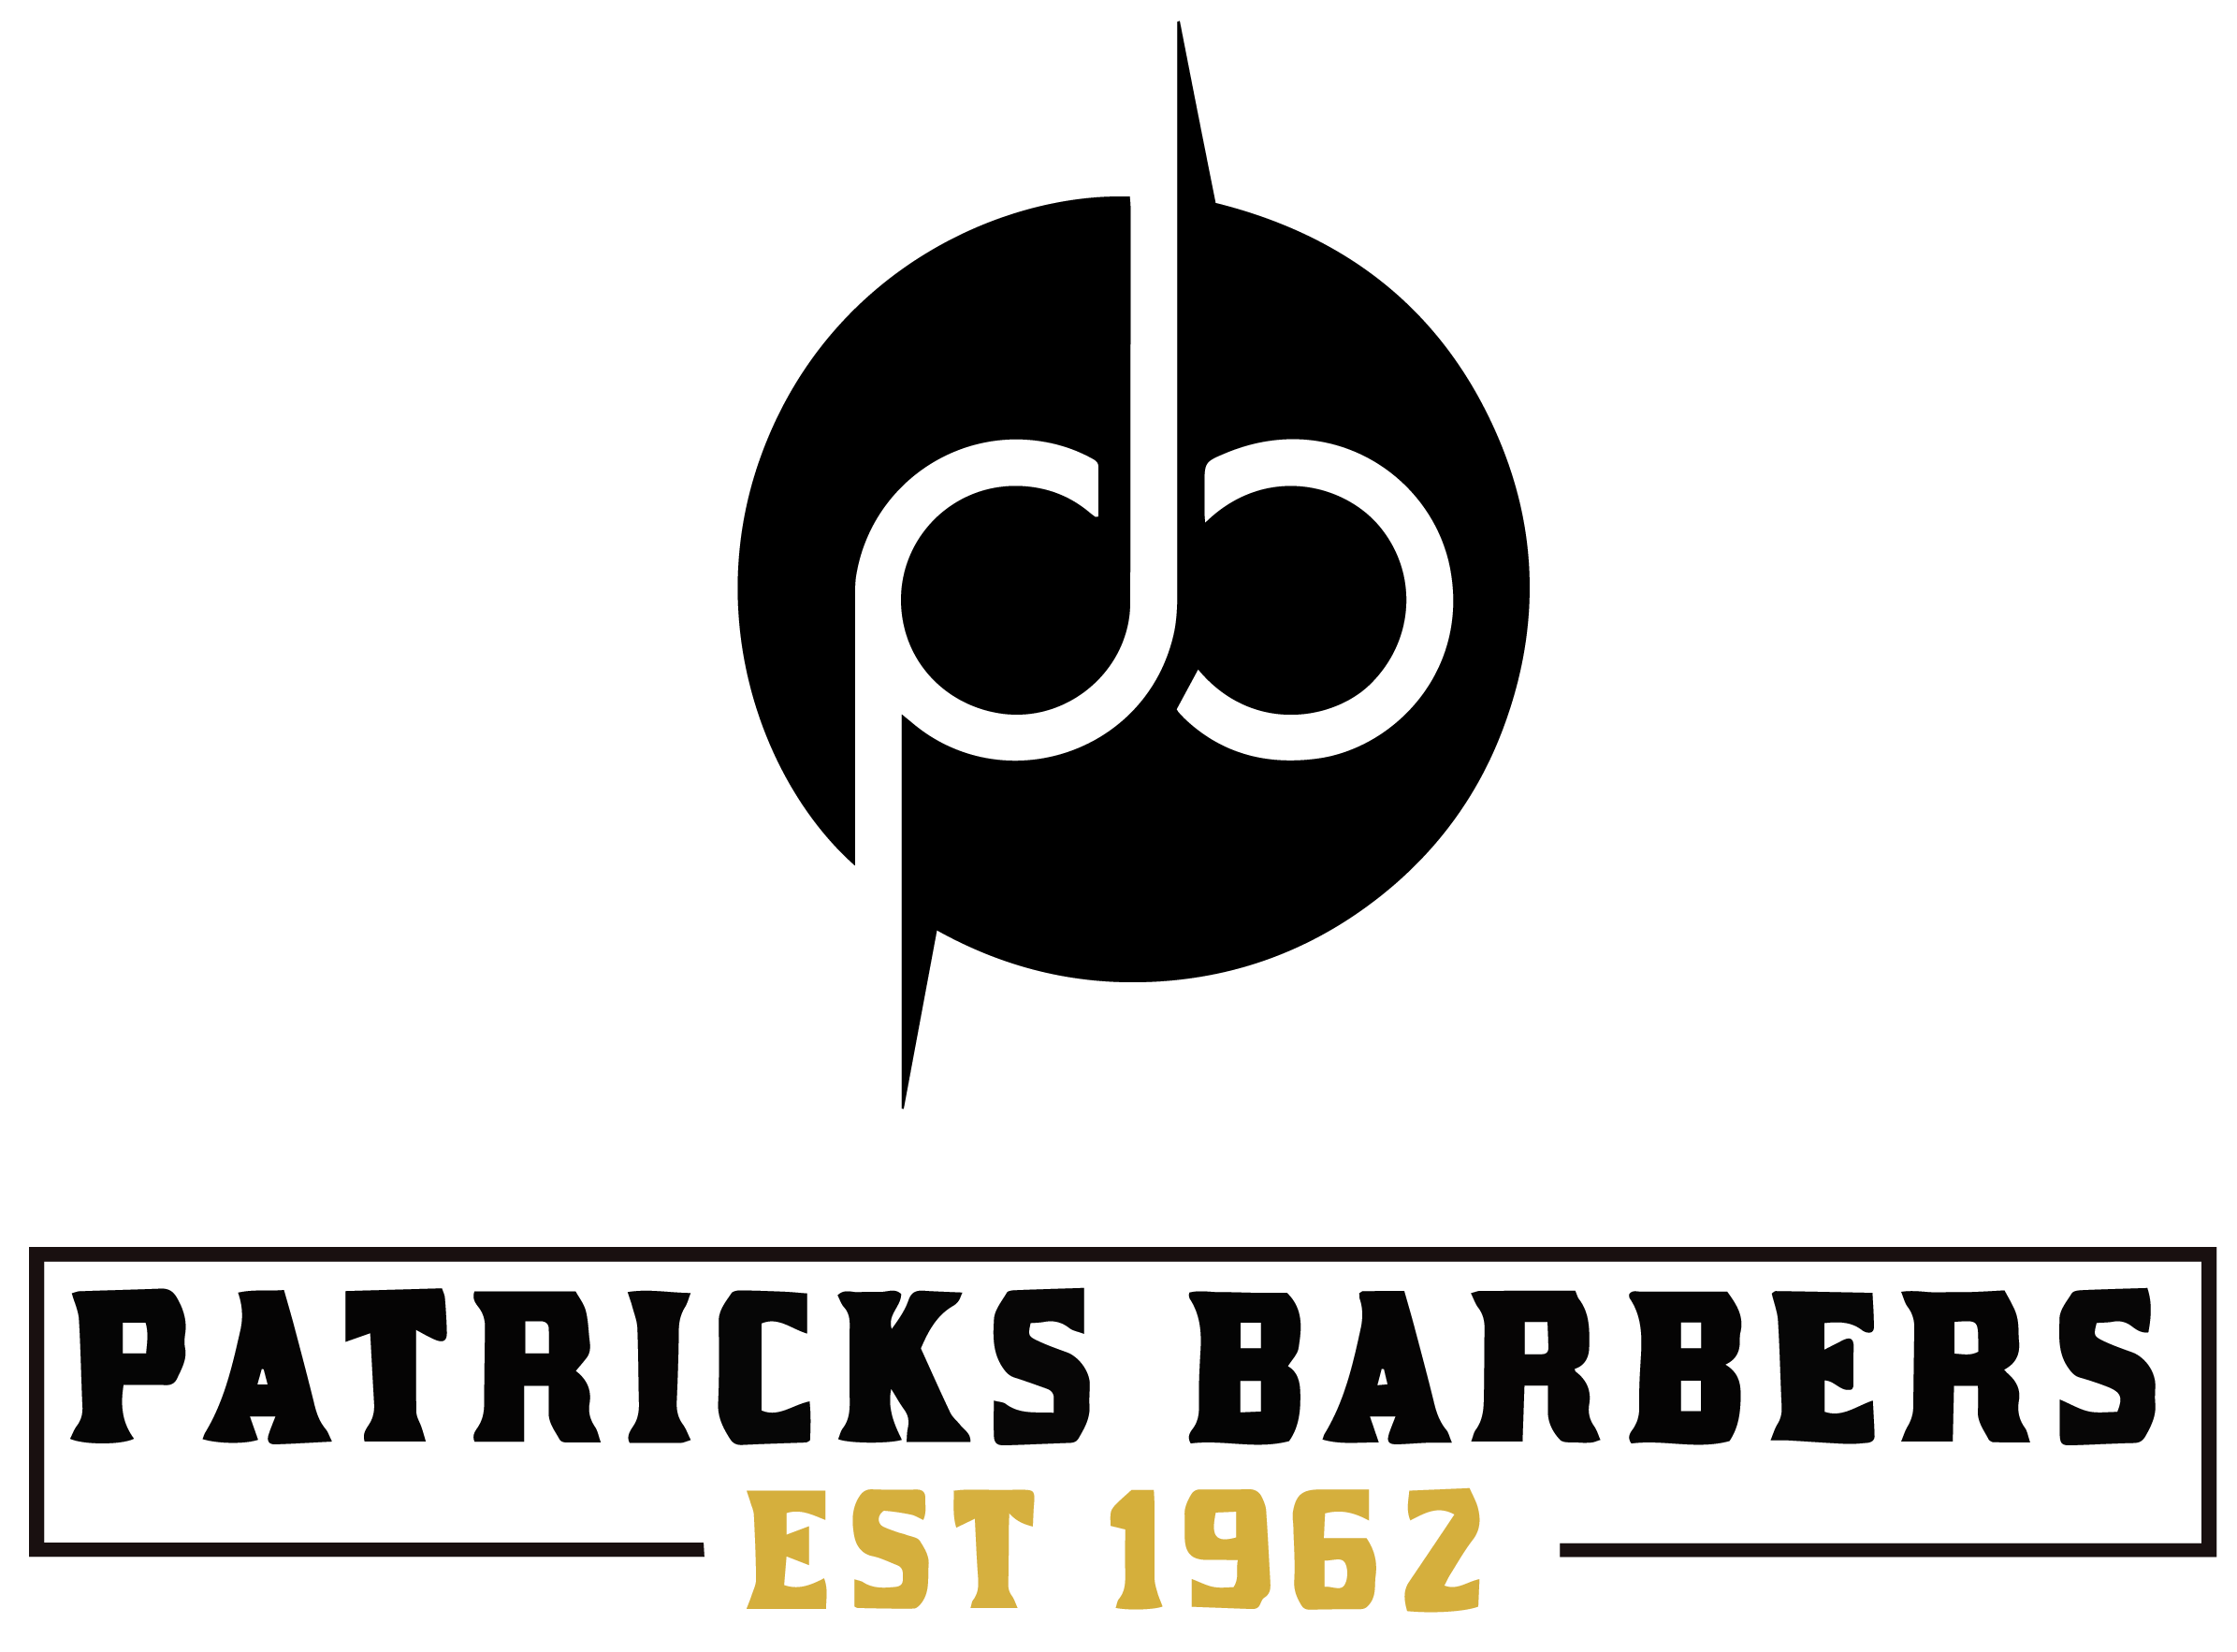 Patricks Barbers - Home - Nottingham Barbers